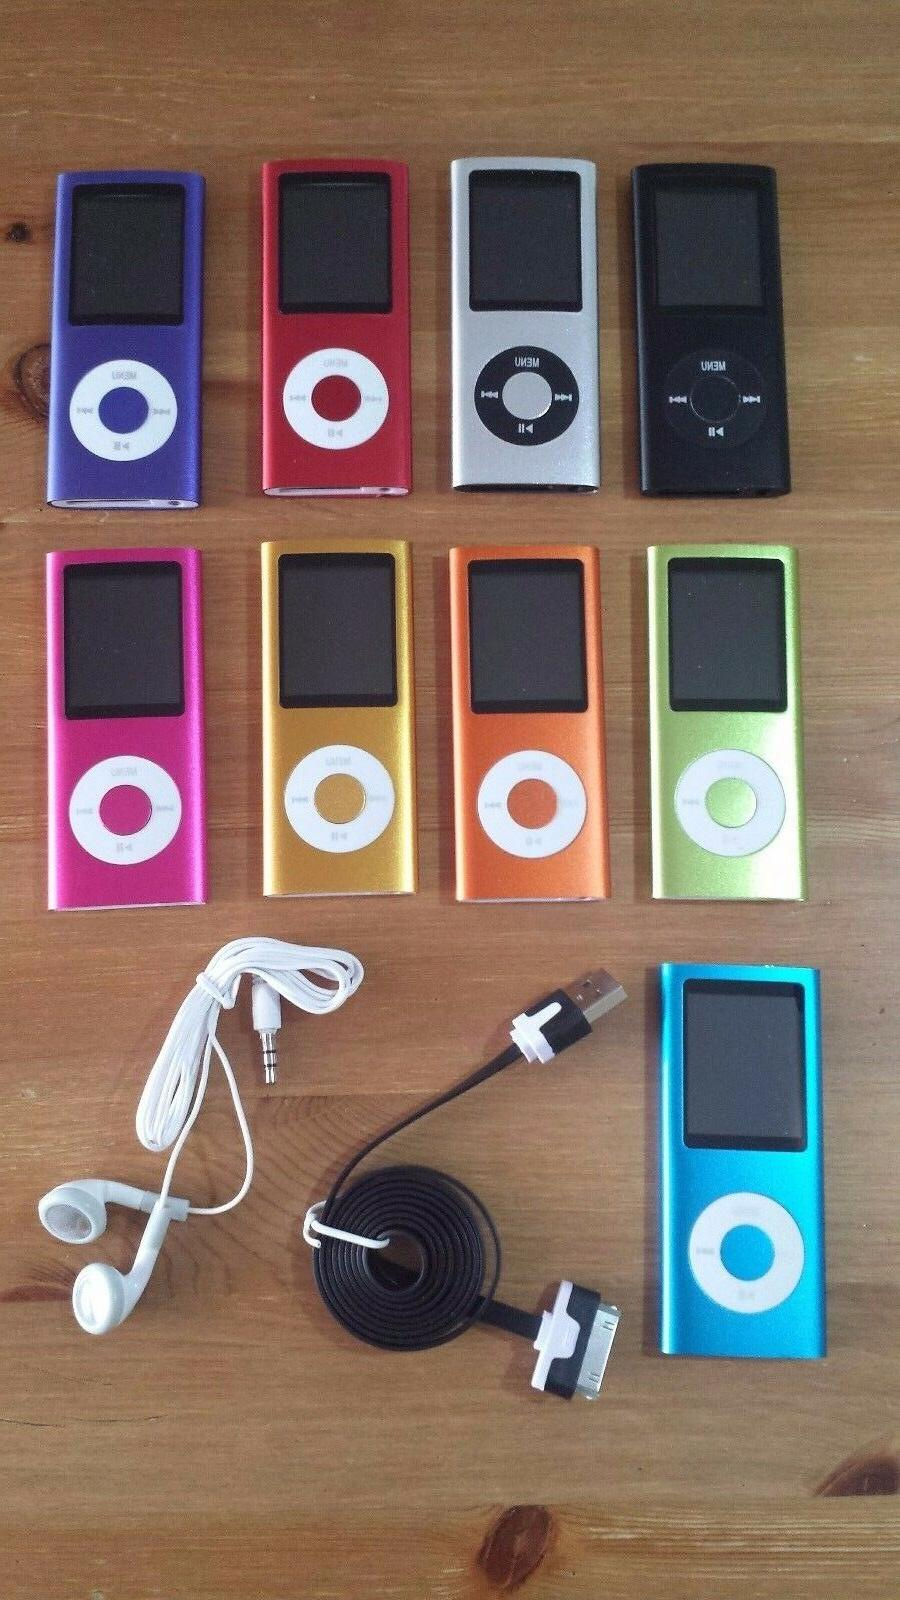 MINI PLAYER 32GB MEMORY - WITH ALL ACCESSORIES Seller